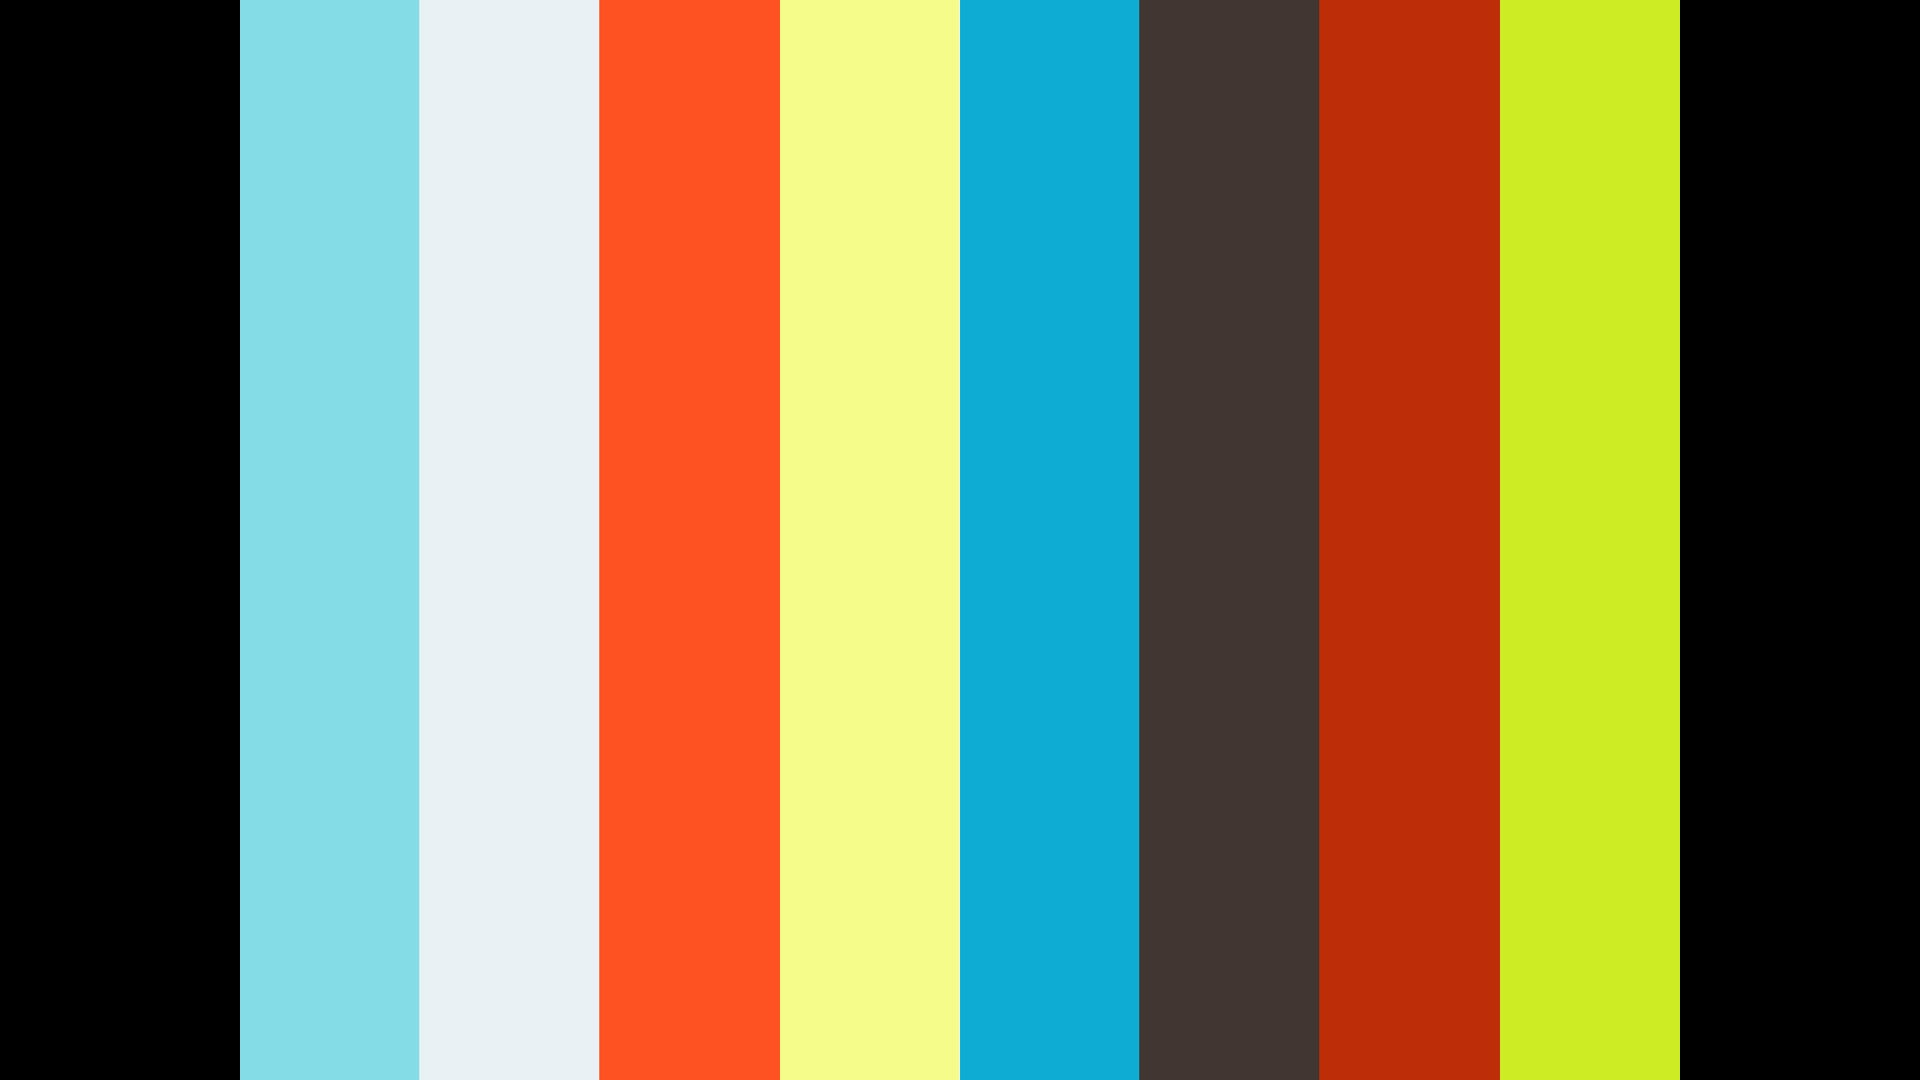 ART + BELIEVE PRESS RELEASE VIDEO